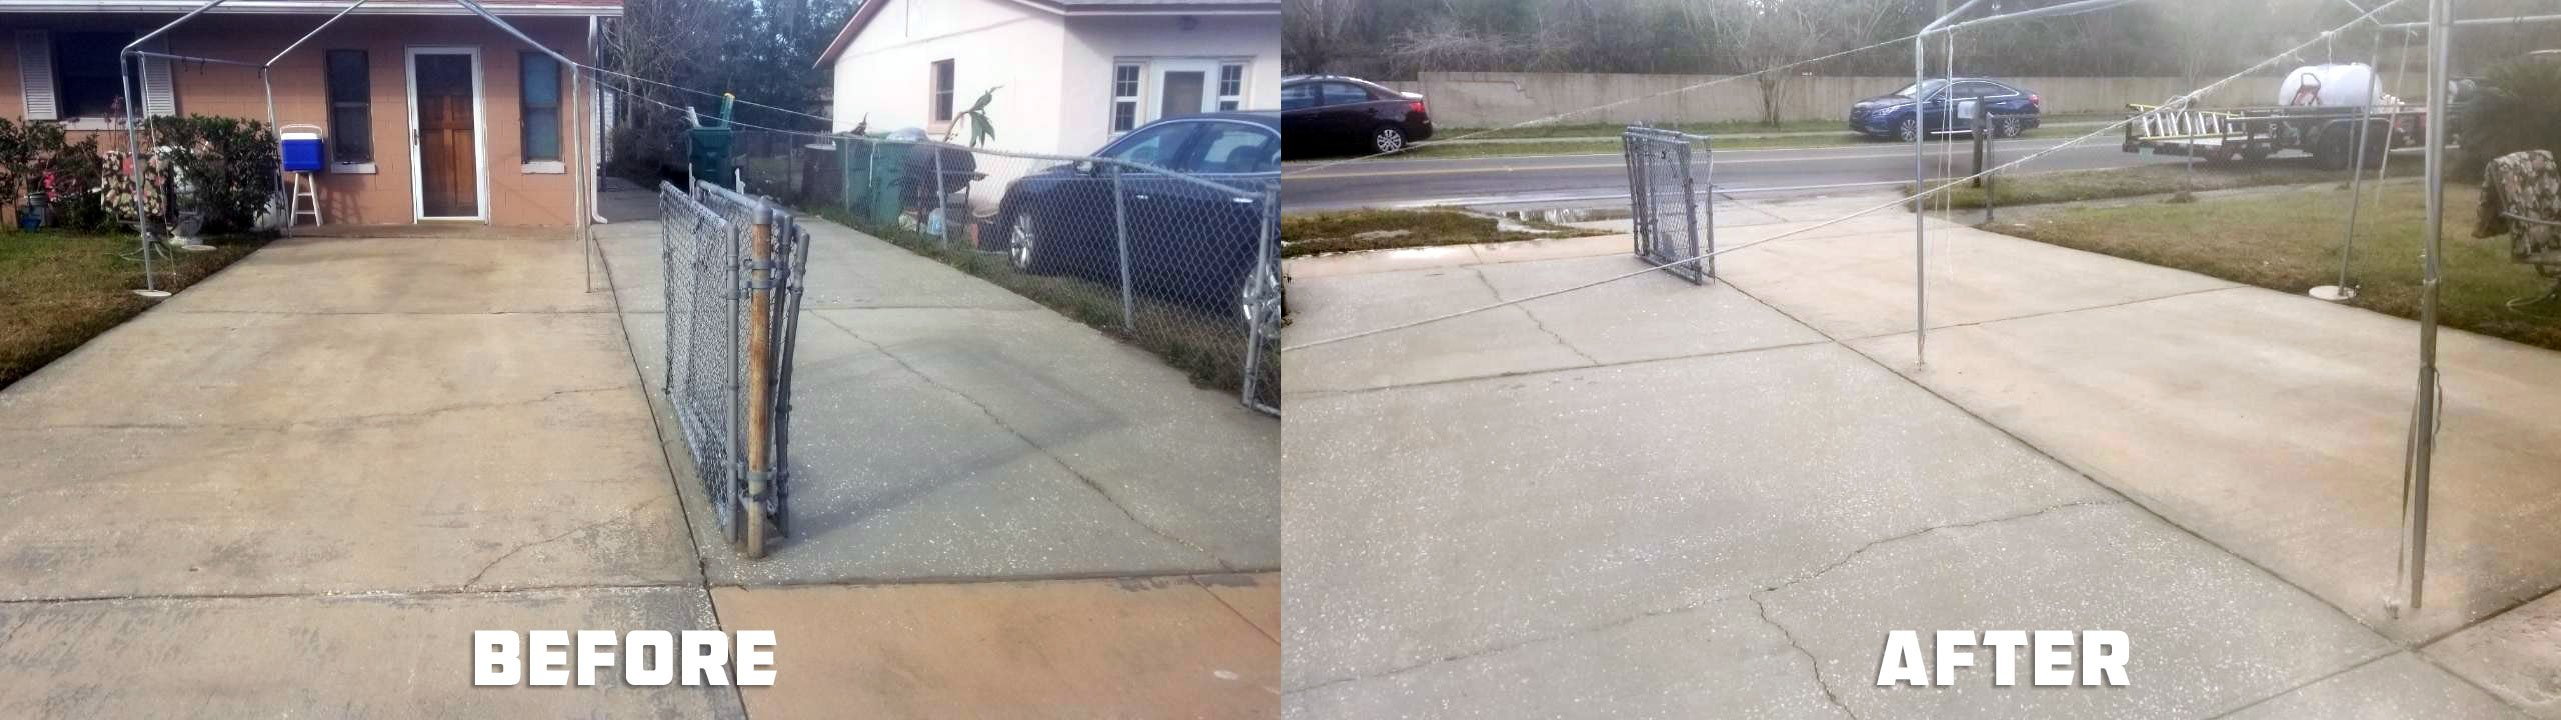 Driveway cleaning service by Reliable Soft Wash